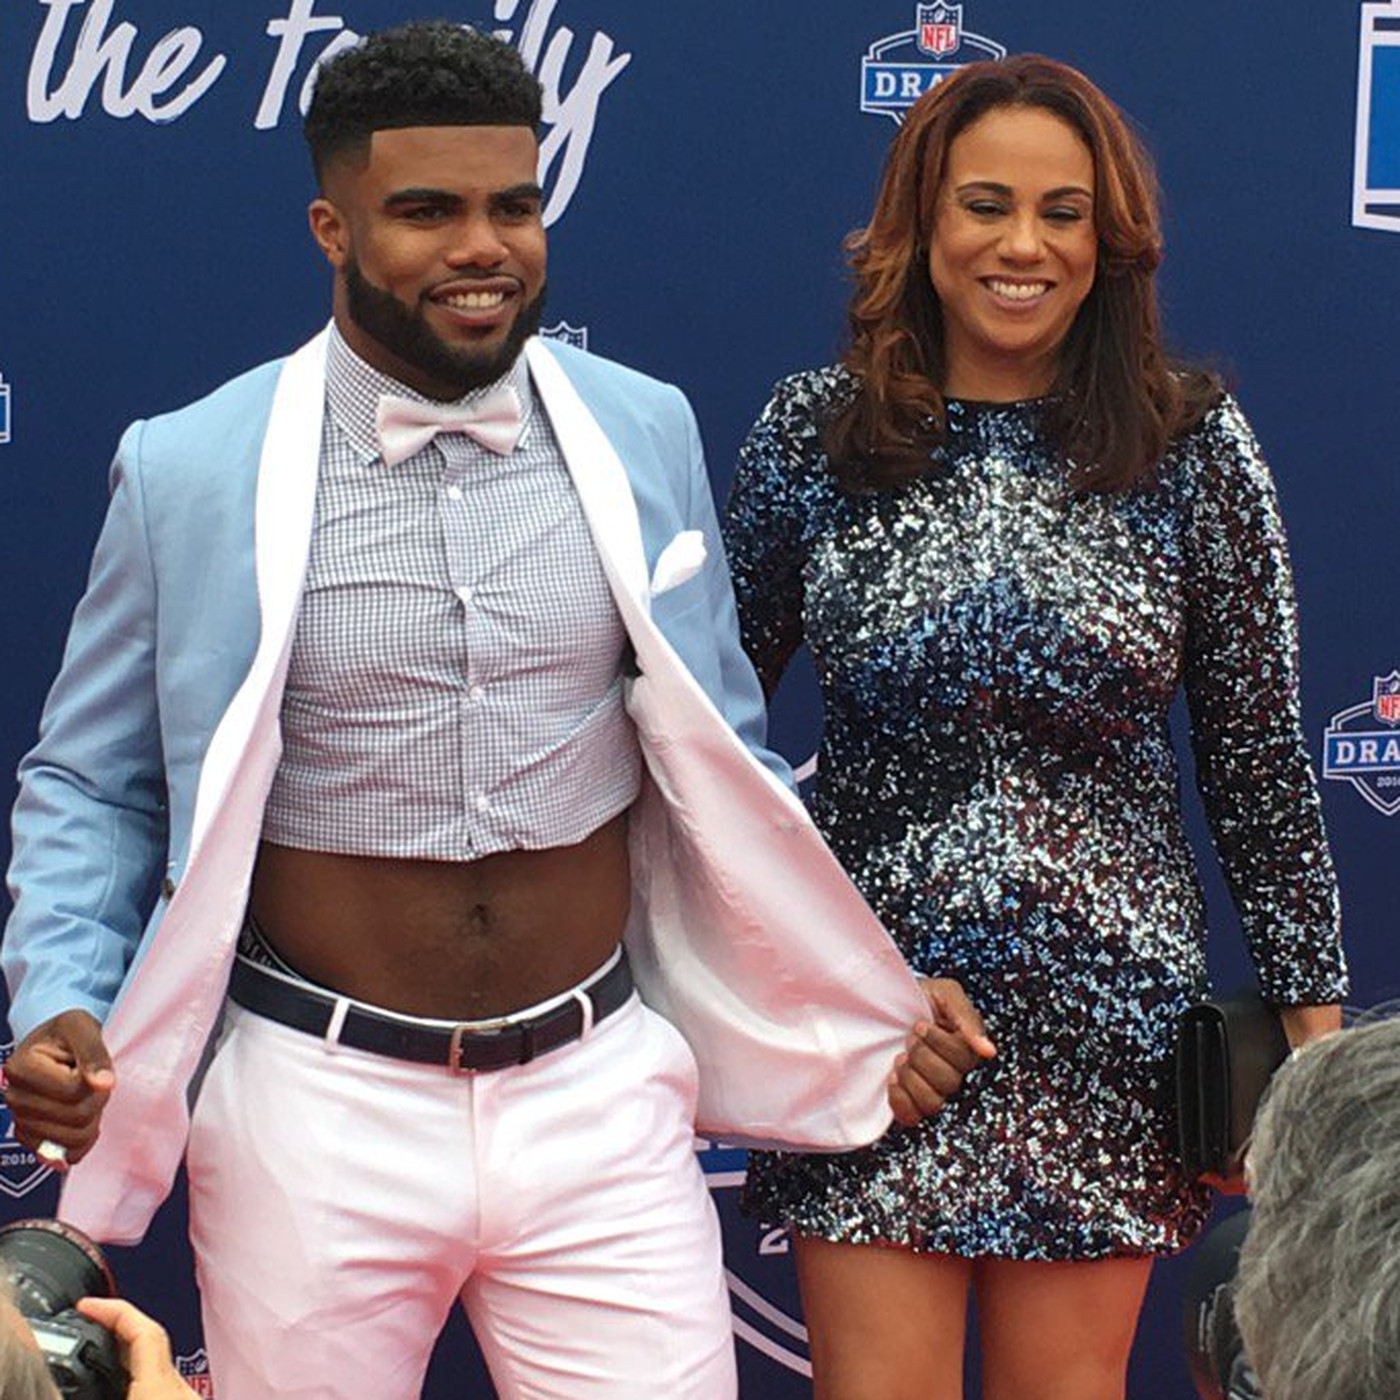 905689c84 Ezekiel Elliott took his signature crop top to the ultimate level at the NFL  Draft - SBNation.com